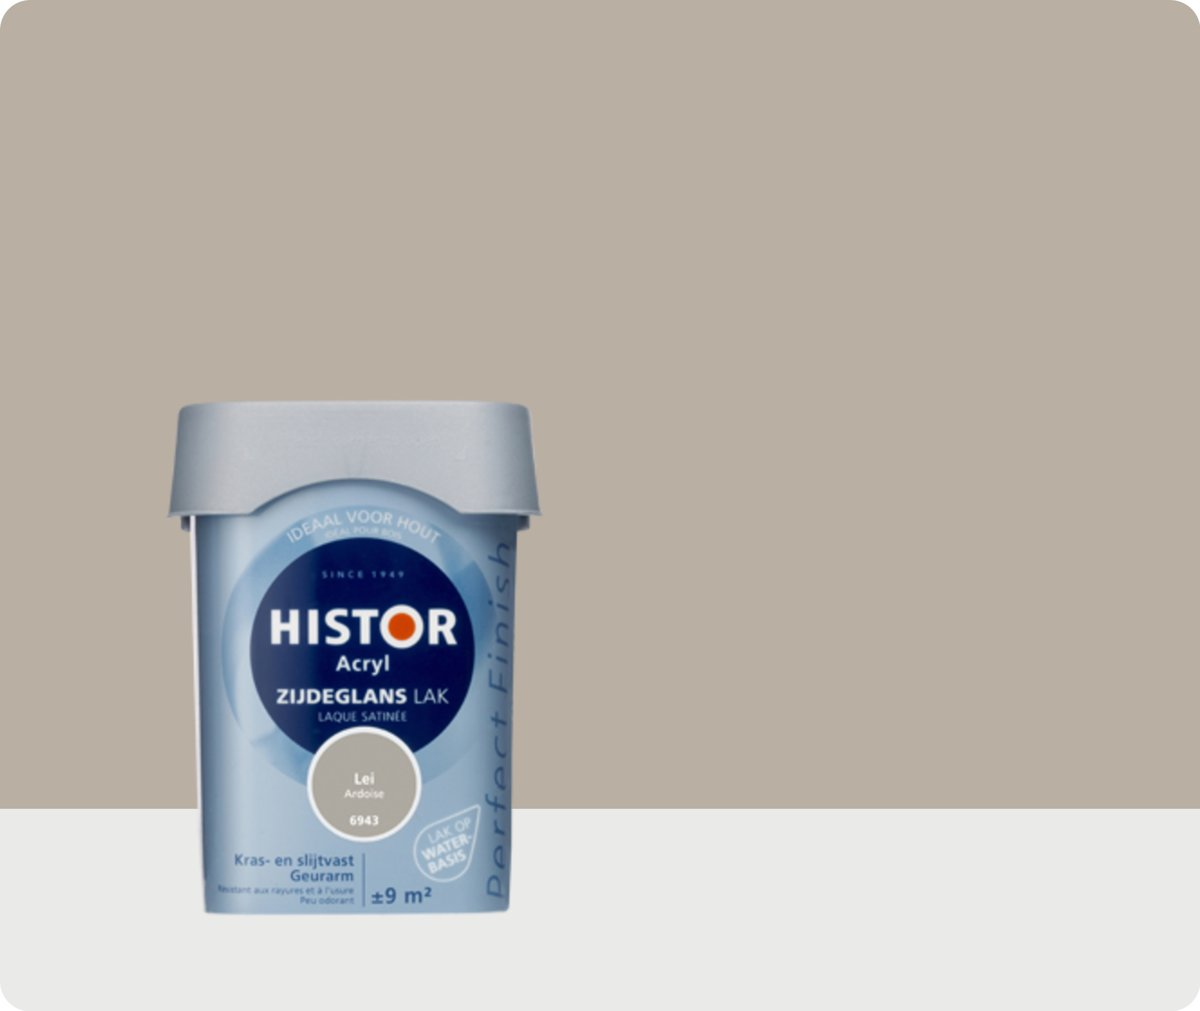 Histor Perfect Finish Lak Acryl Zijdeglans 0,75 liter - Lei